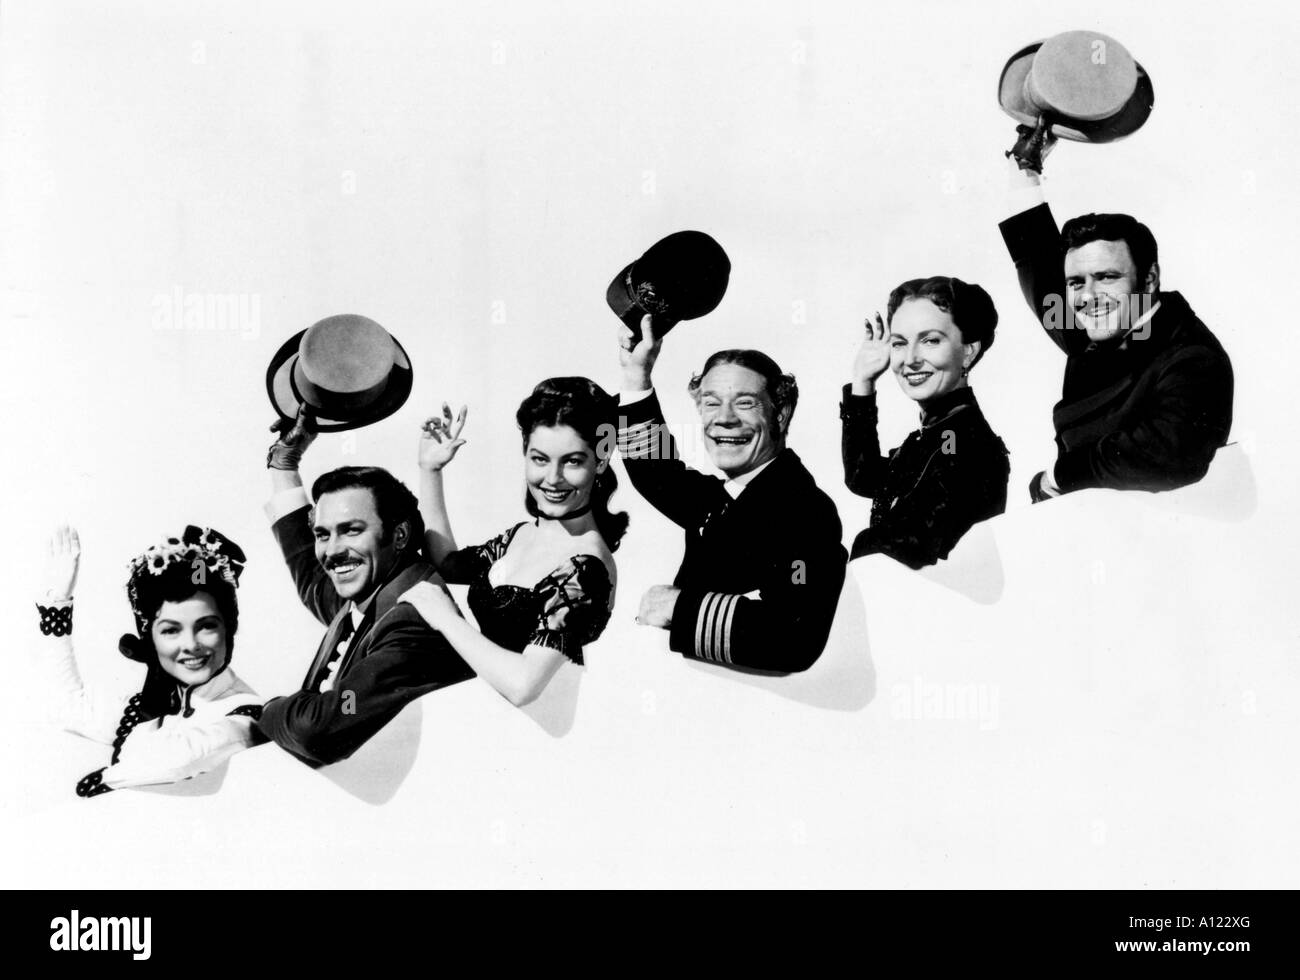 Show Boat Year 1950 Director George Sidney Kathryn Grayson Howard Keel Ava Gardner Joe E Brown Agnes Moorehead Robert - Stock Image